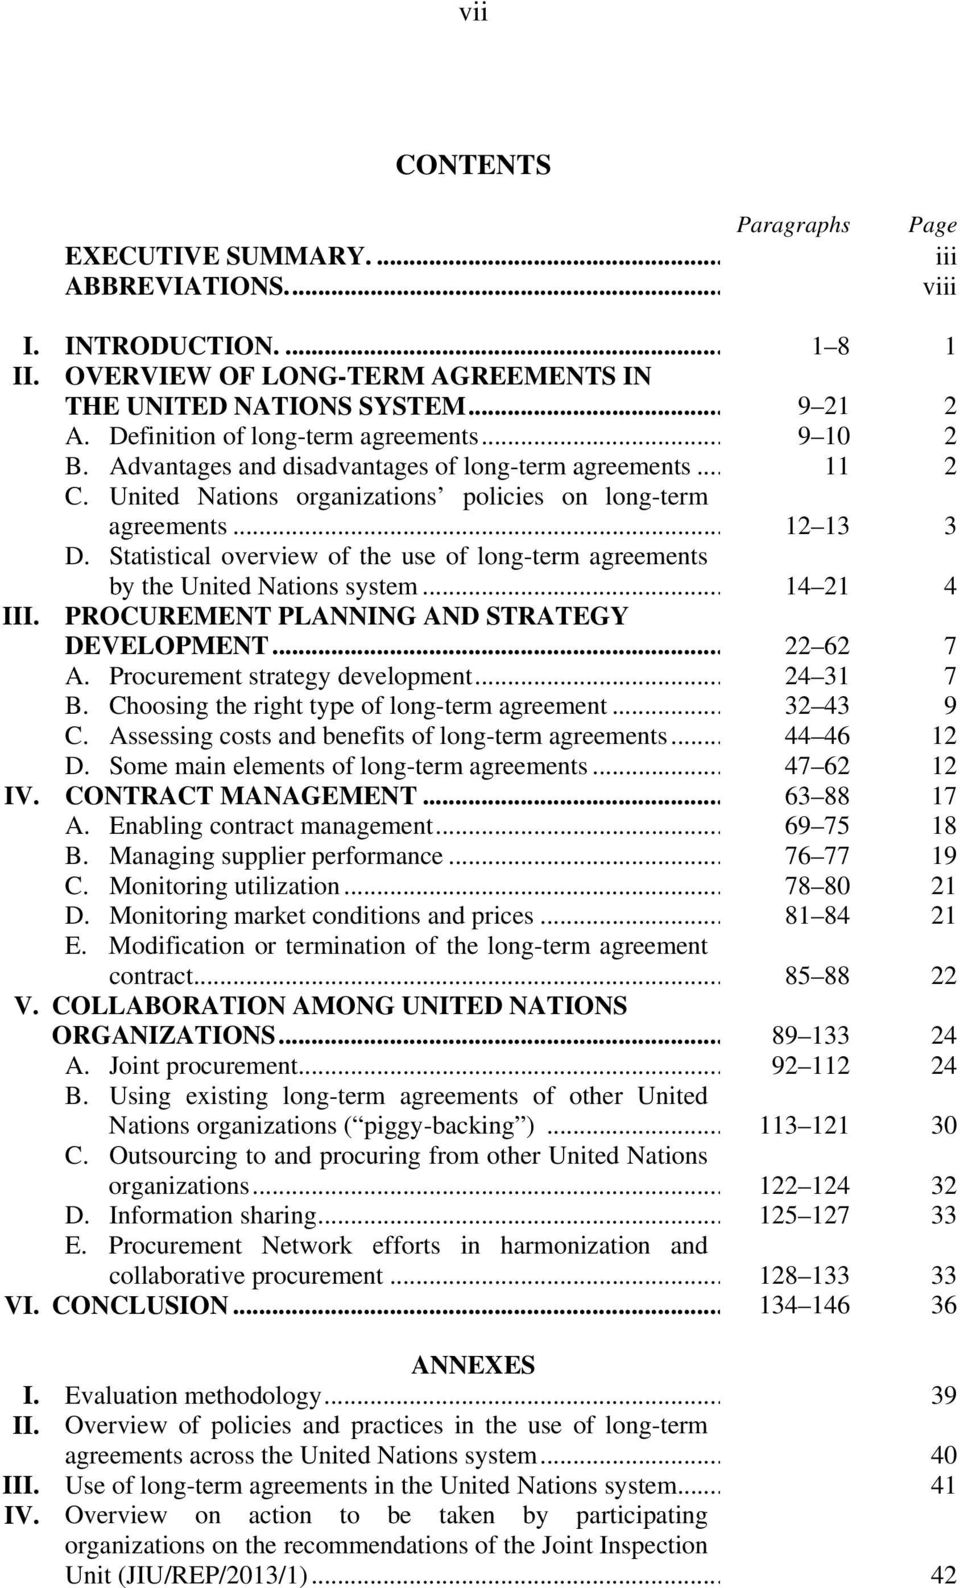 Statistical overview of the use of long-term agreements by the United Nations system... 14 21 4 III. PROCUREMENT PLANNING AND STRATEGY DEVELOPMENT... 22 62 7 A. Procurement strategy development.